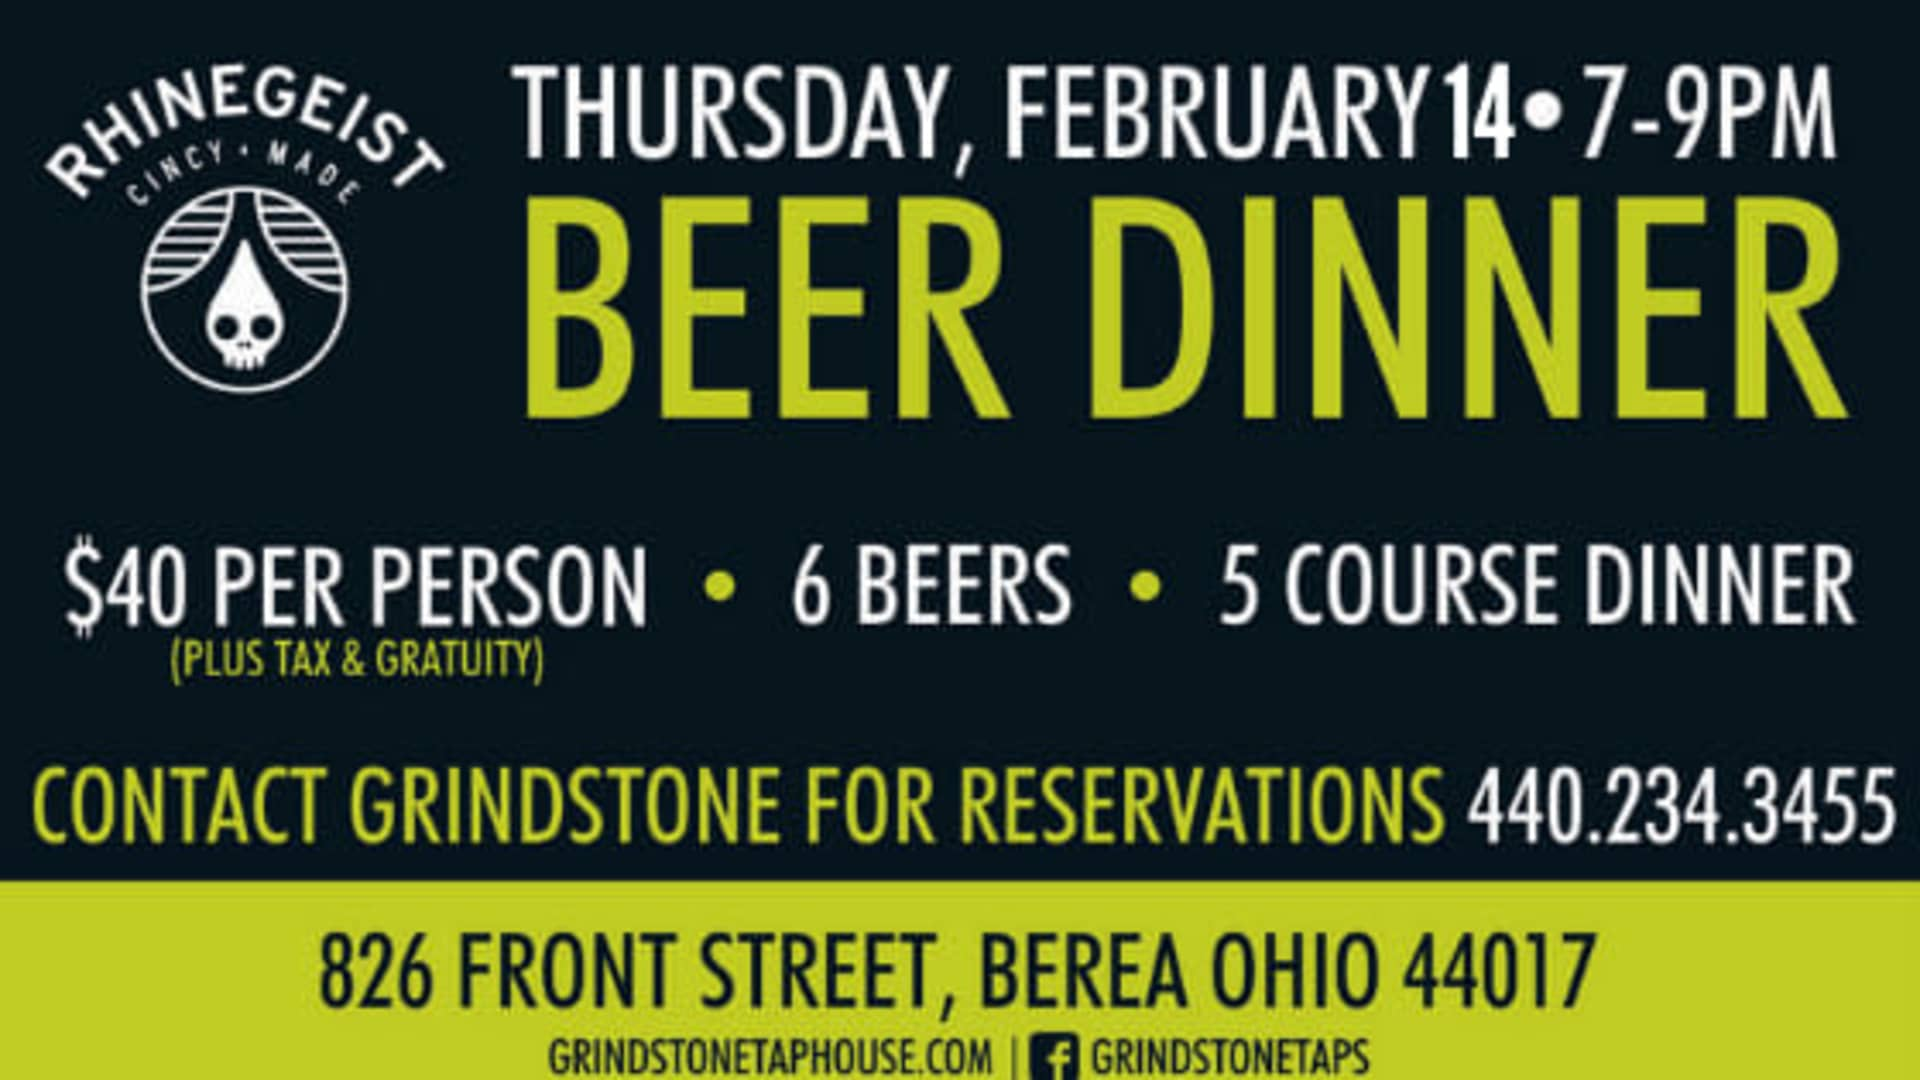 RHINEGEIST BREWERY BEER DINNER